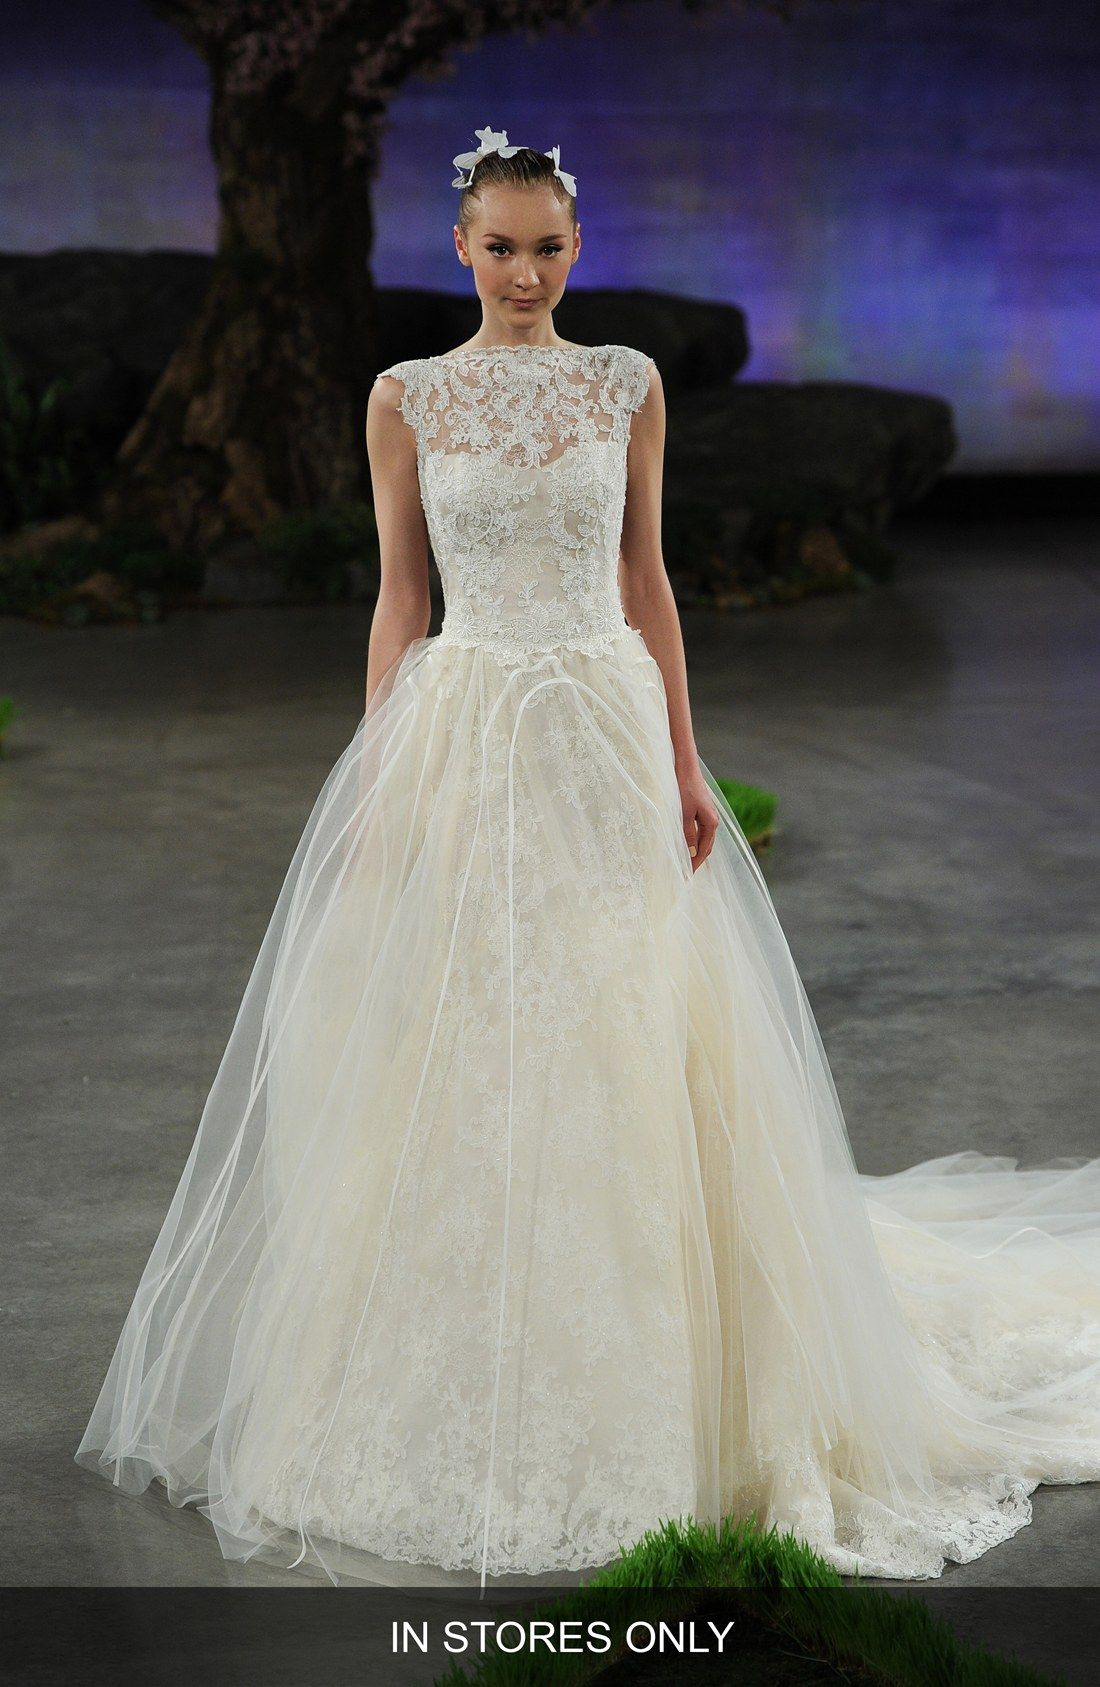 Margeaux Tulle Detachable Overskirt | Wedding dress, Wedding things ...